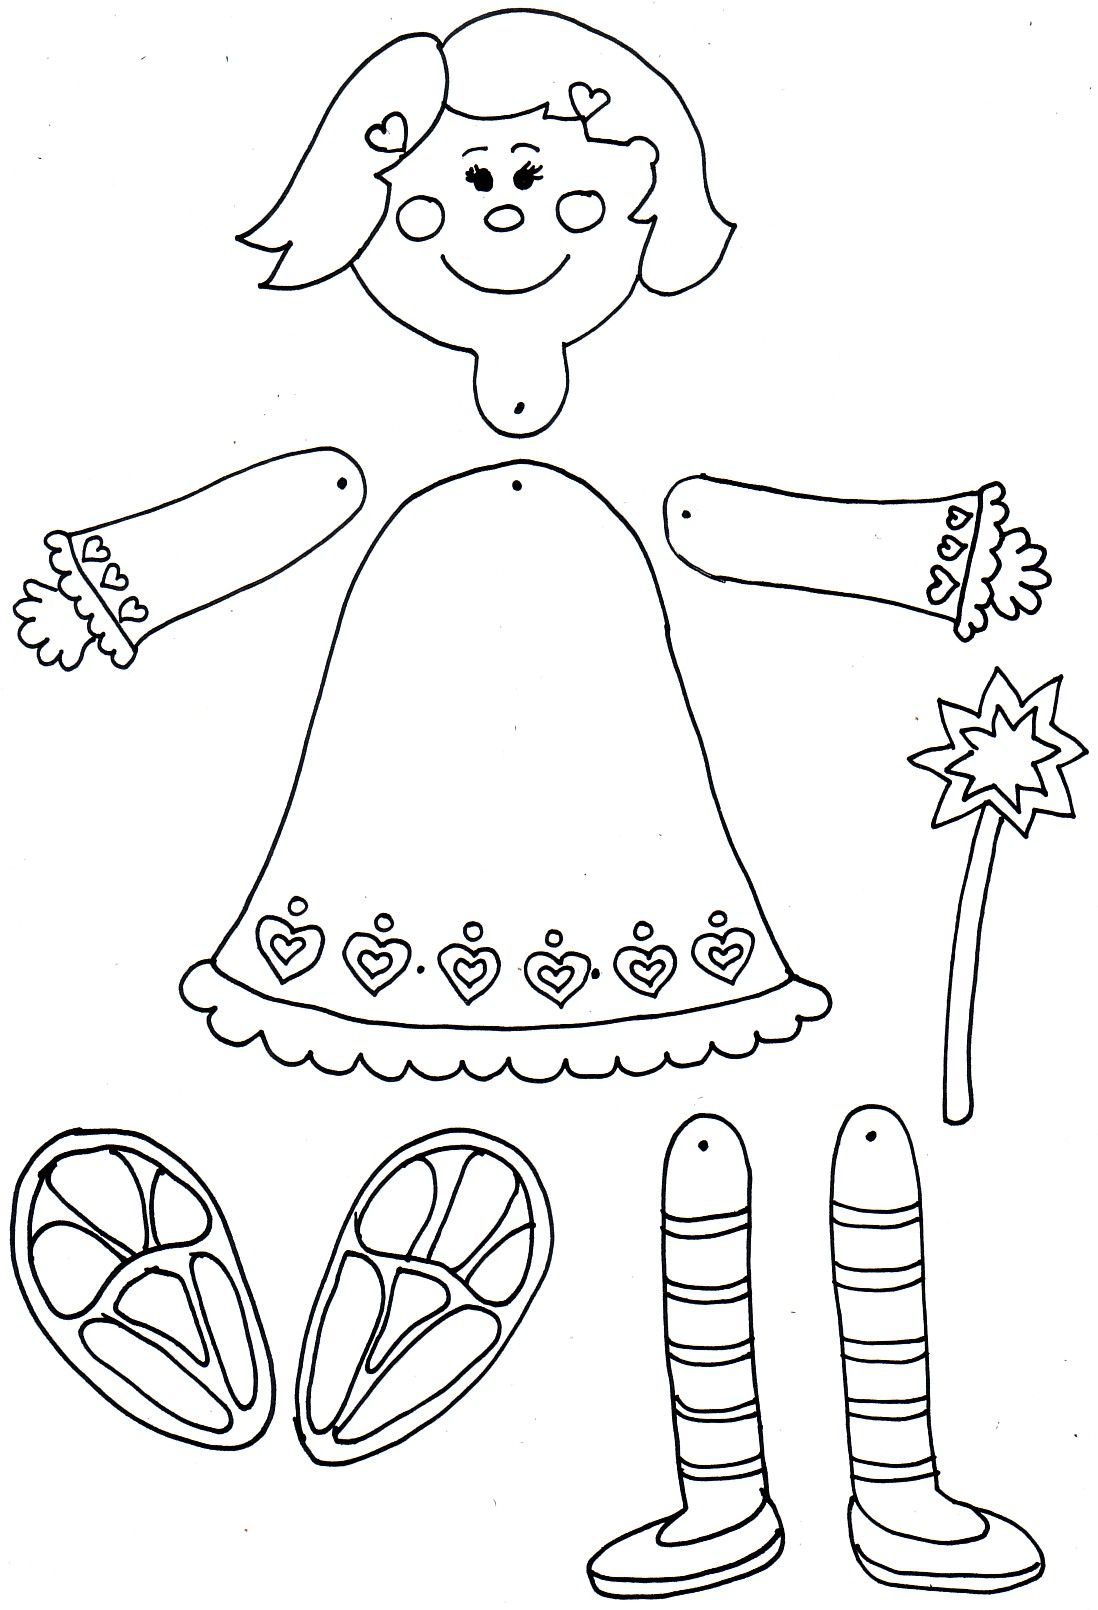 Mozgo Bab Paper Dolls Mixed Media Art Journaling Paper Puppets